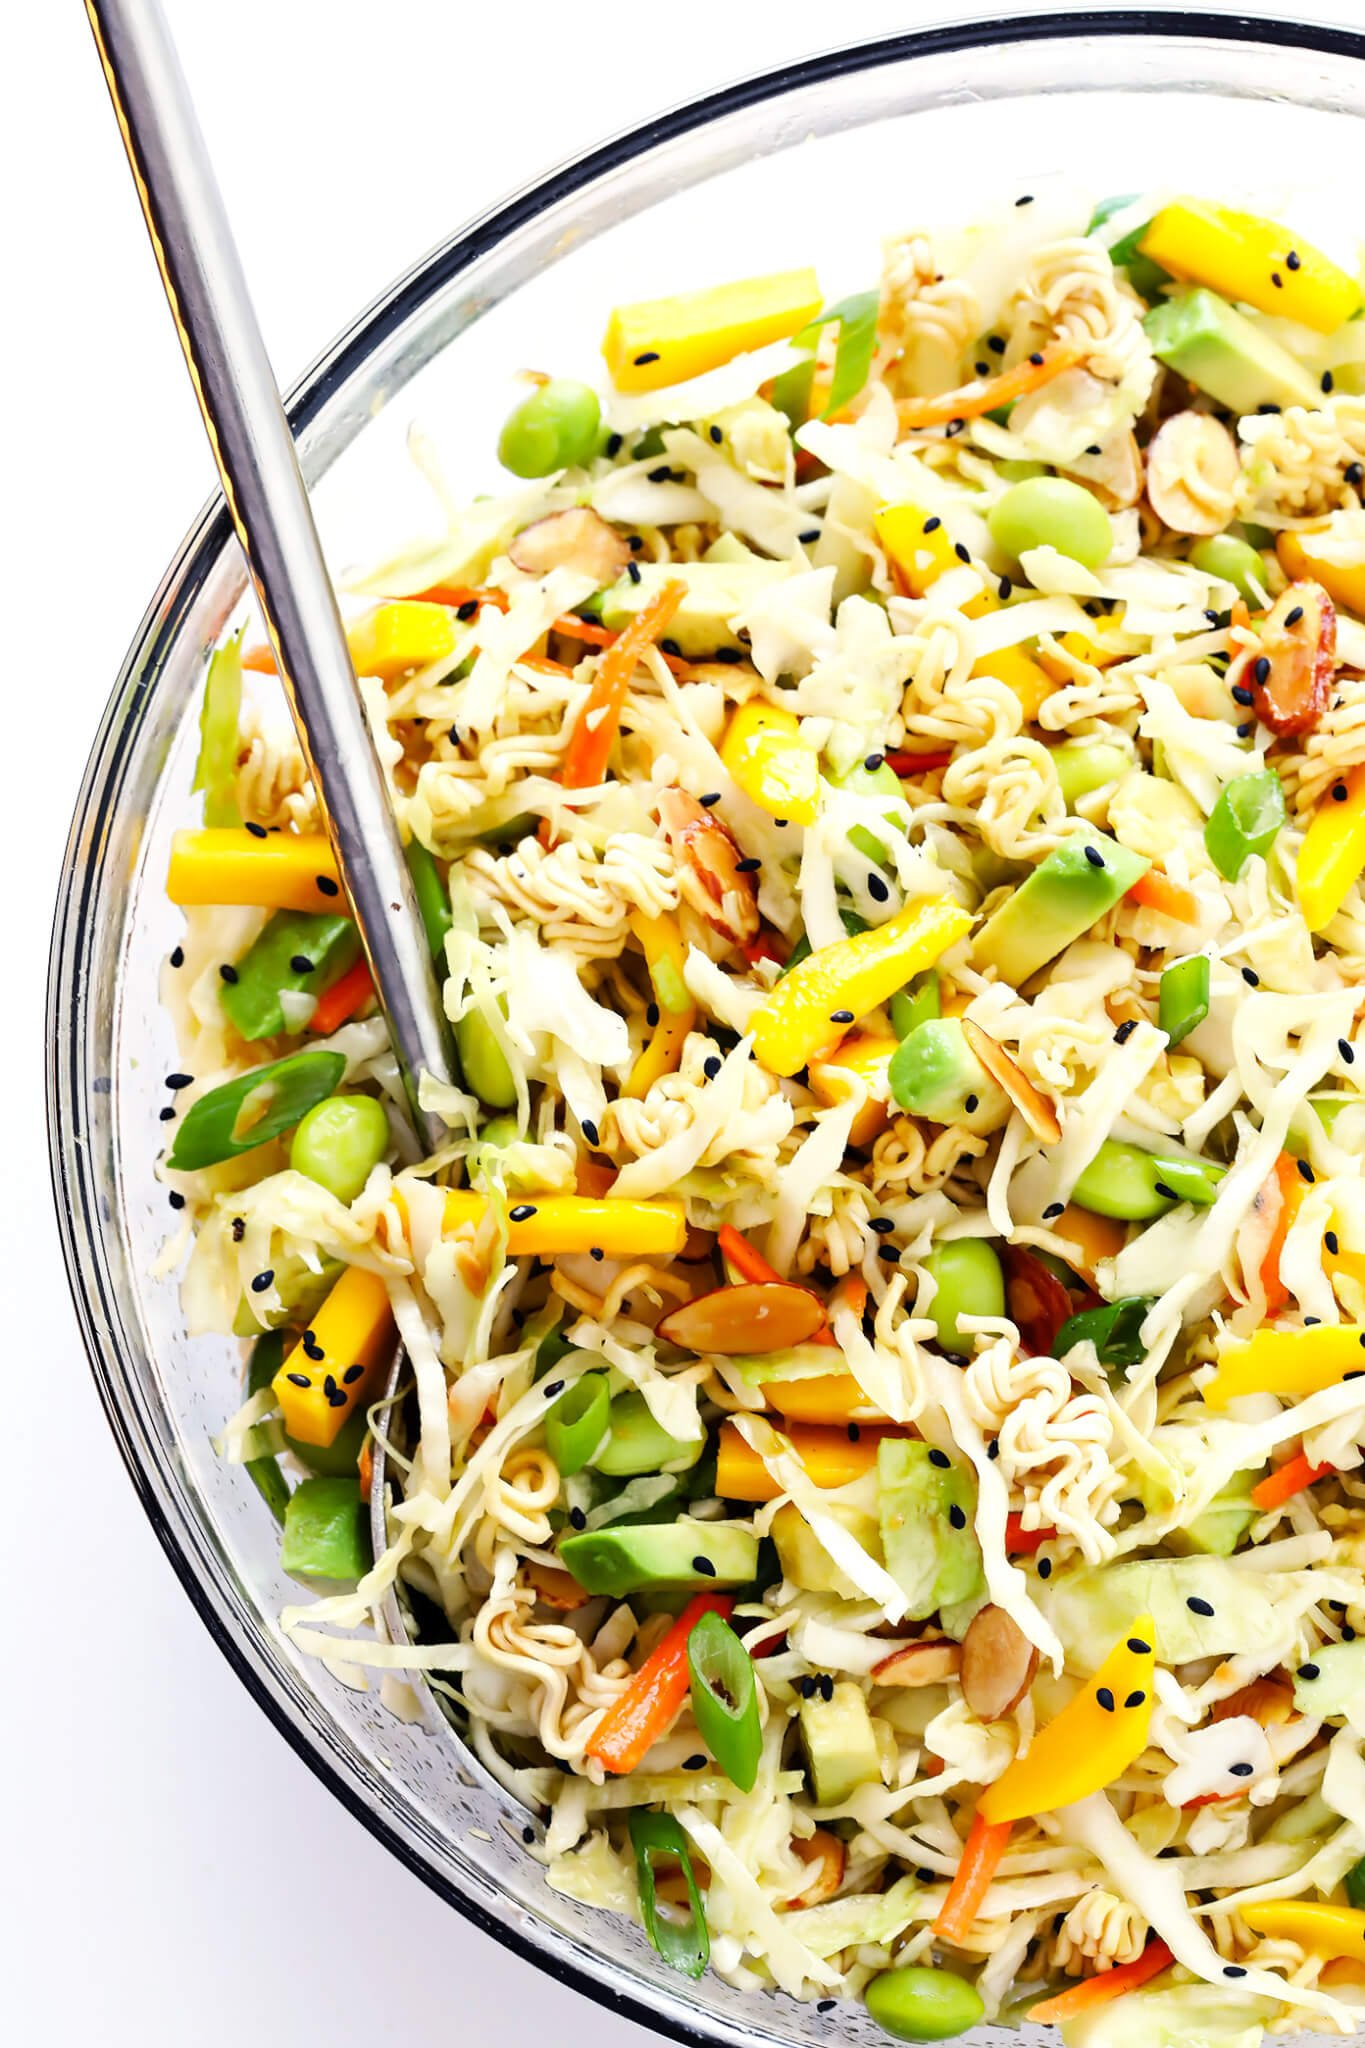 This Crunchy Asian Ramen Noodle Salad is easy to make, tossed with fresh mango, avocado, edamame, cole slaw, almonds, and a sesame honey vinaigrette...and SO delicious! Perfect for potlucks, picnics, or as a simple salad or side dish. | gimmesomeoven.com